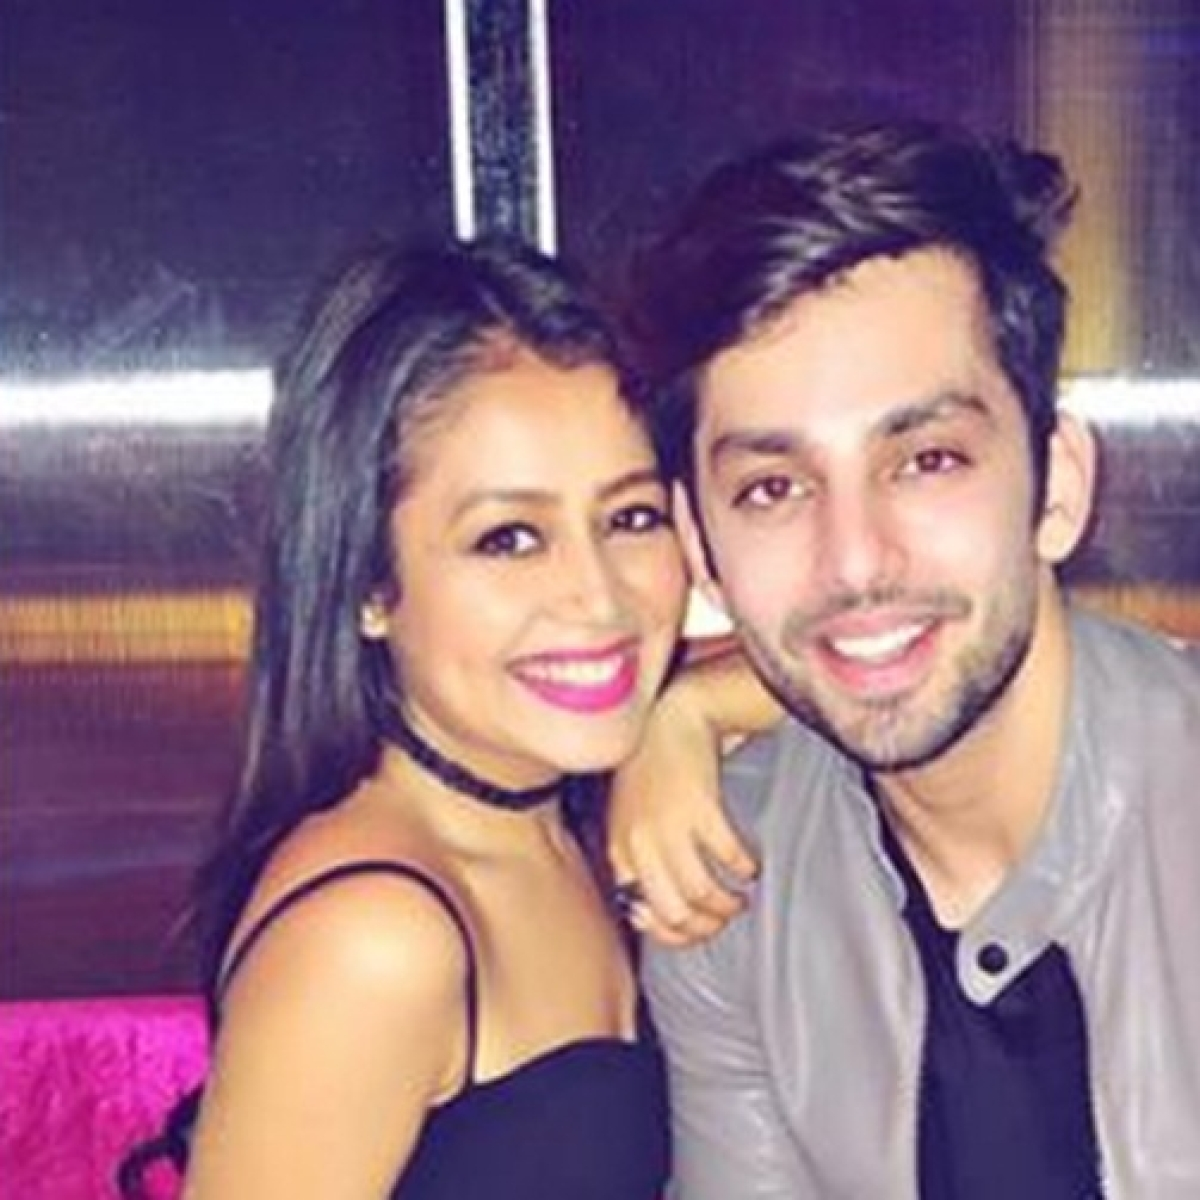 'Using my fame to appear in News': Neha Kakkar hits back at ex-boyfriend Himansh Kohli with a cryptic post